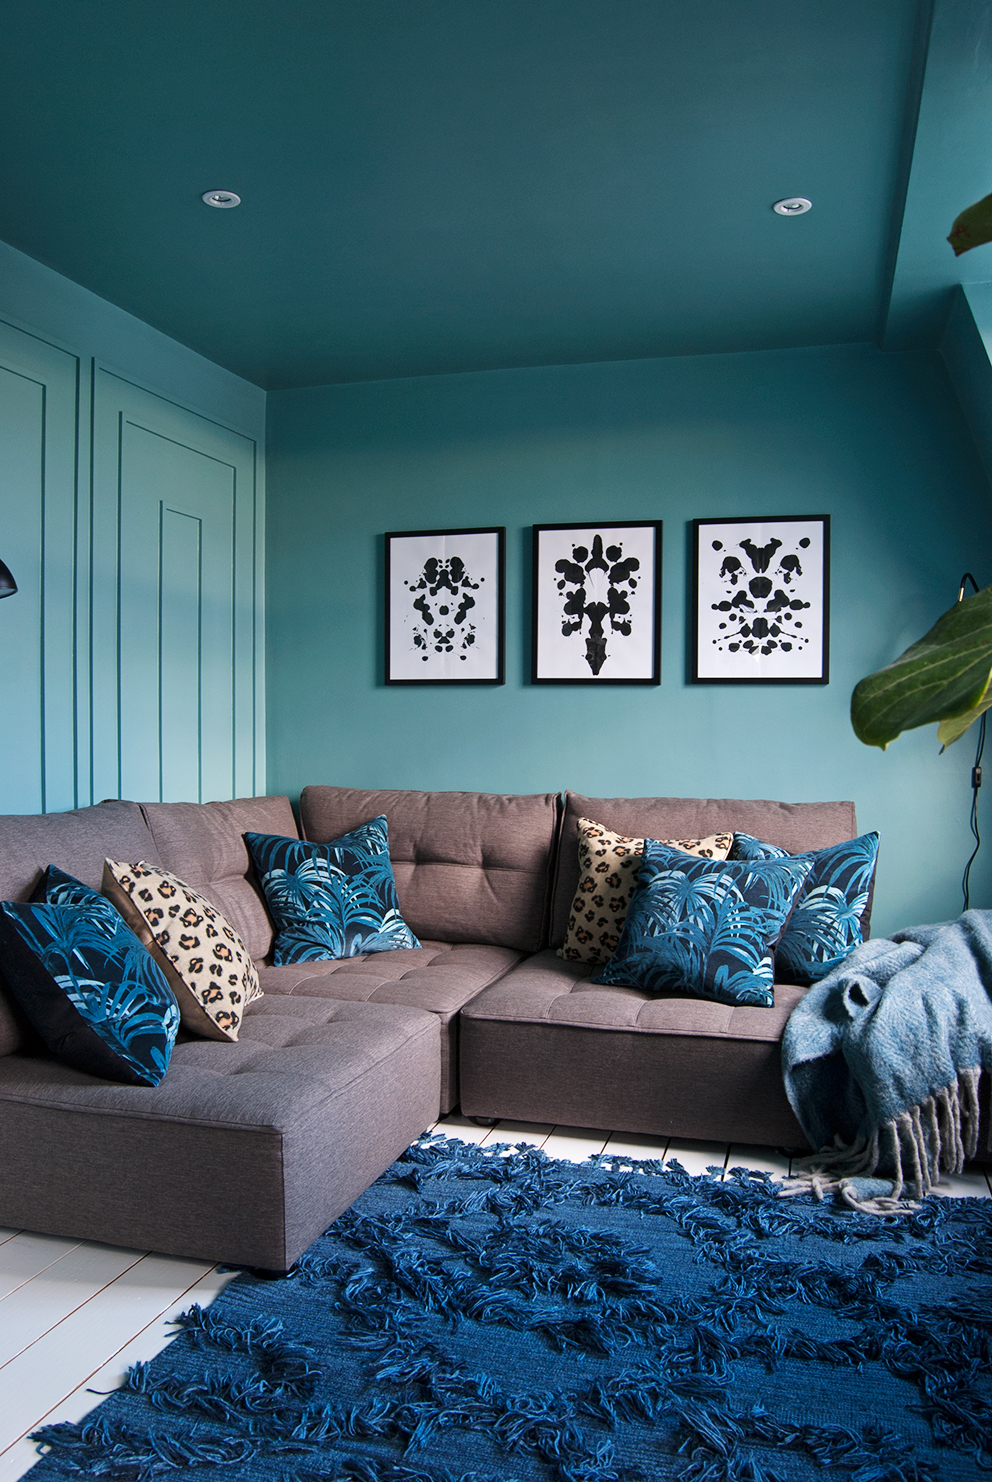 Family TV Room Reveal - French For Pineapple Blog - Teal blue room with brown sofa and velvet House of Hackney cushions, shaggy blue rug, and decorative wall moulding.